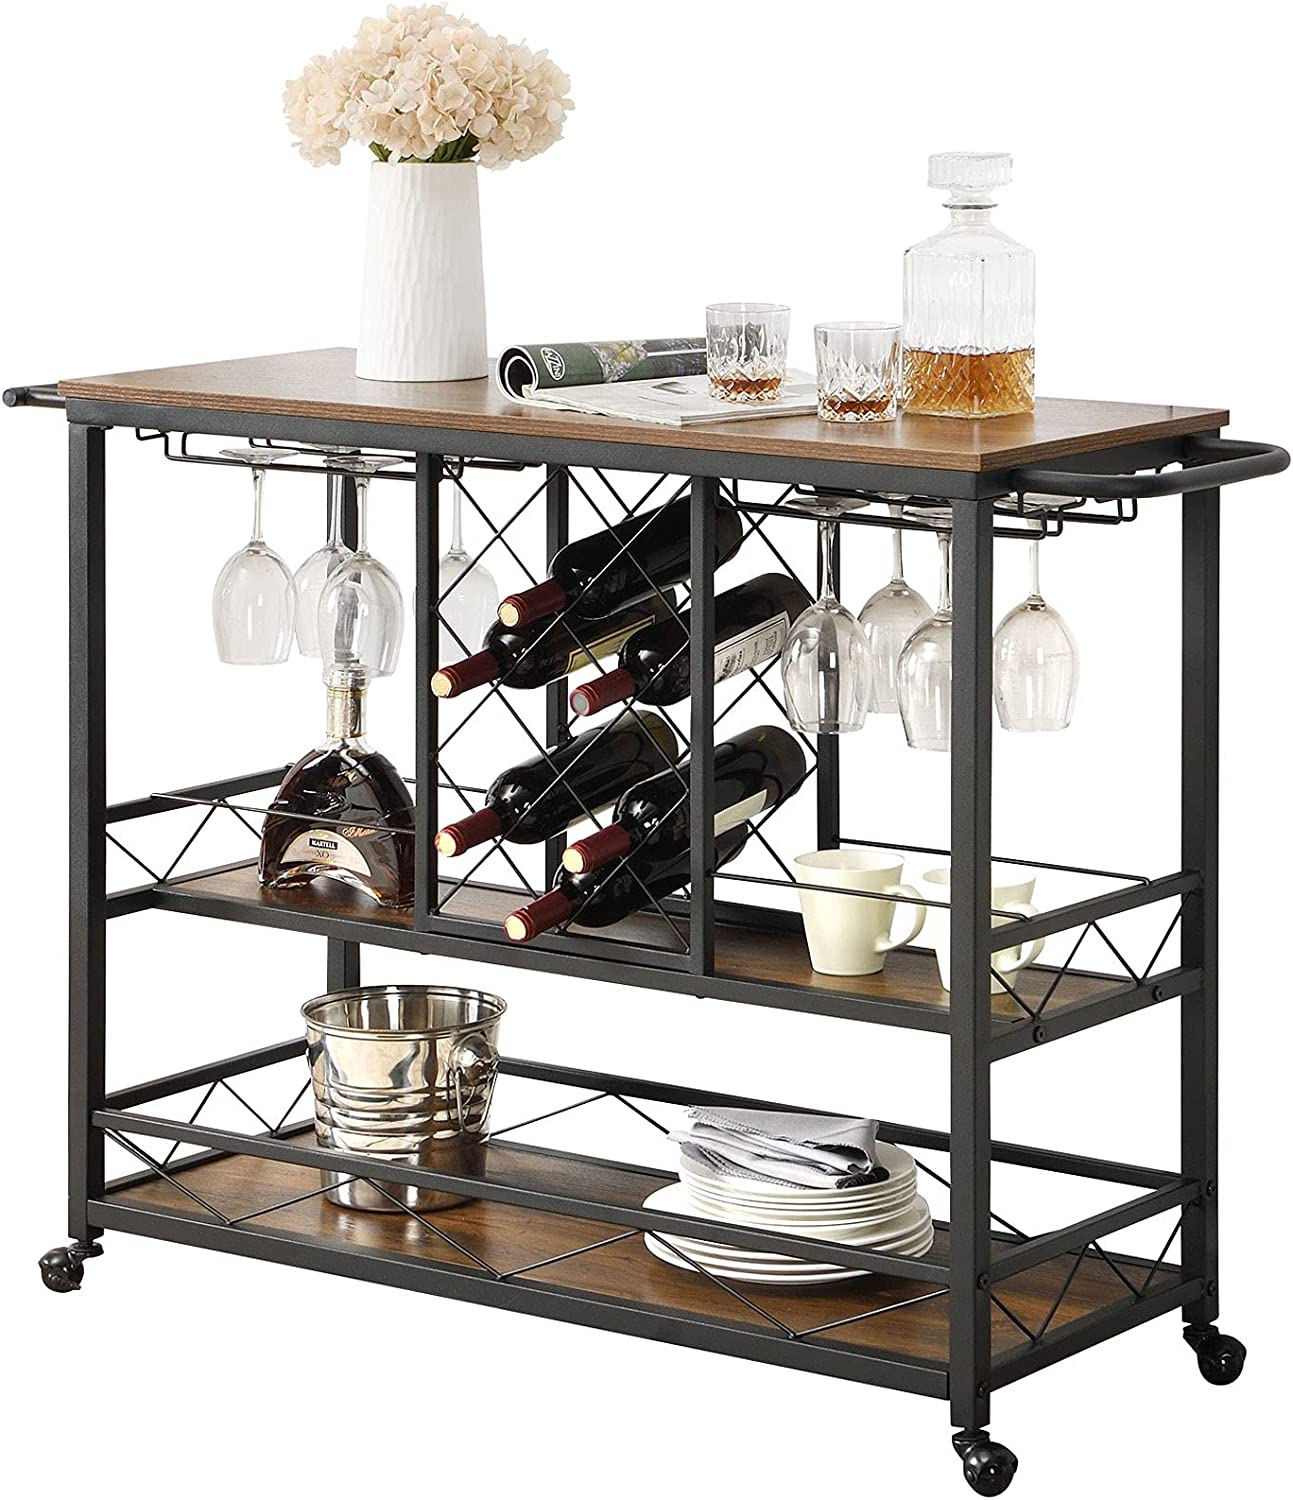 ASYA Industrial Bar Cart for Home with Wine Rack and Glass Holder, 3-Tier Rolling Kitchen Serving Cart with Wheels and Handles, Mini Bar Cabinet, Retro Brown